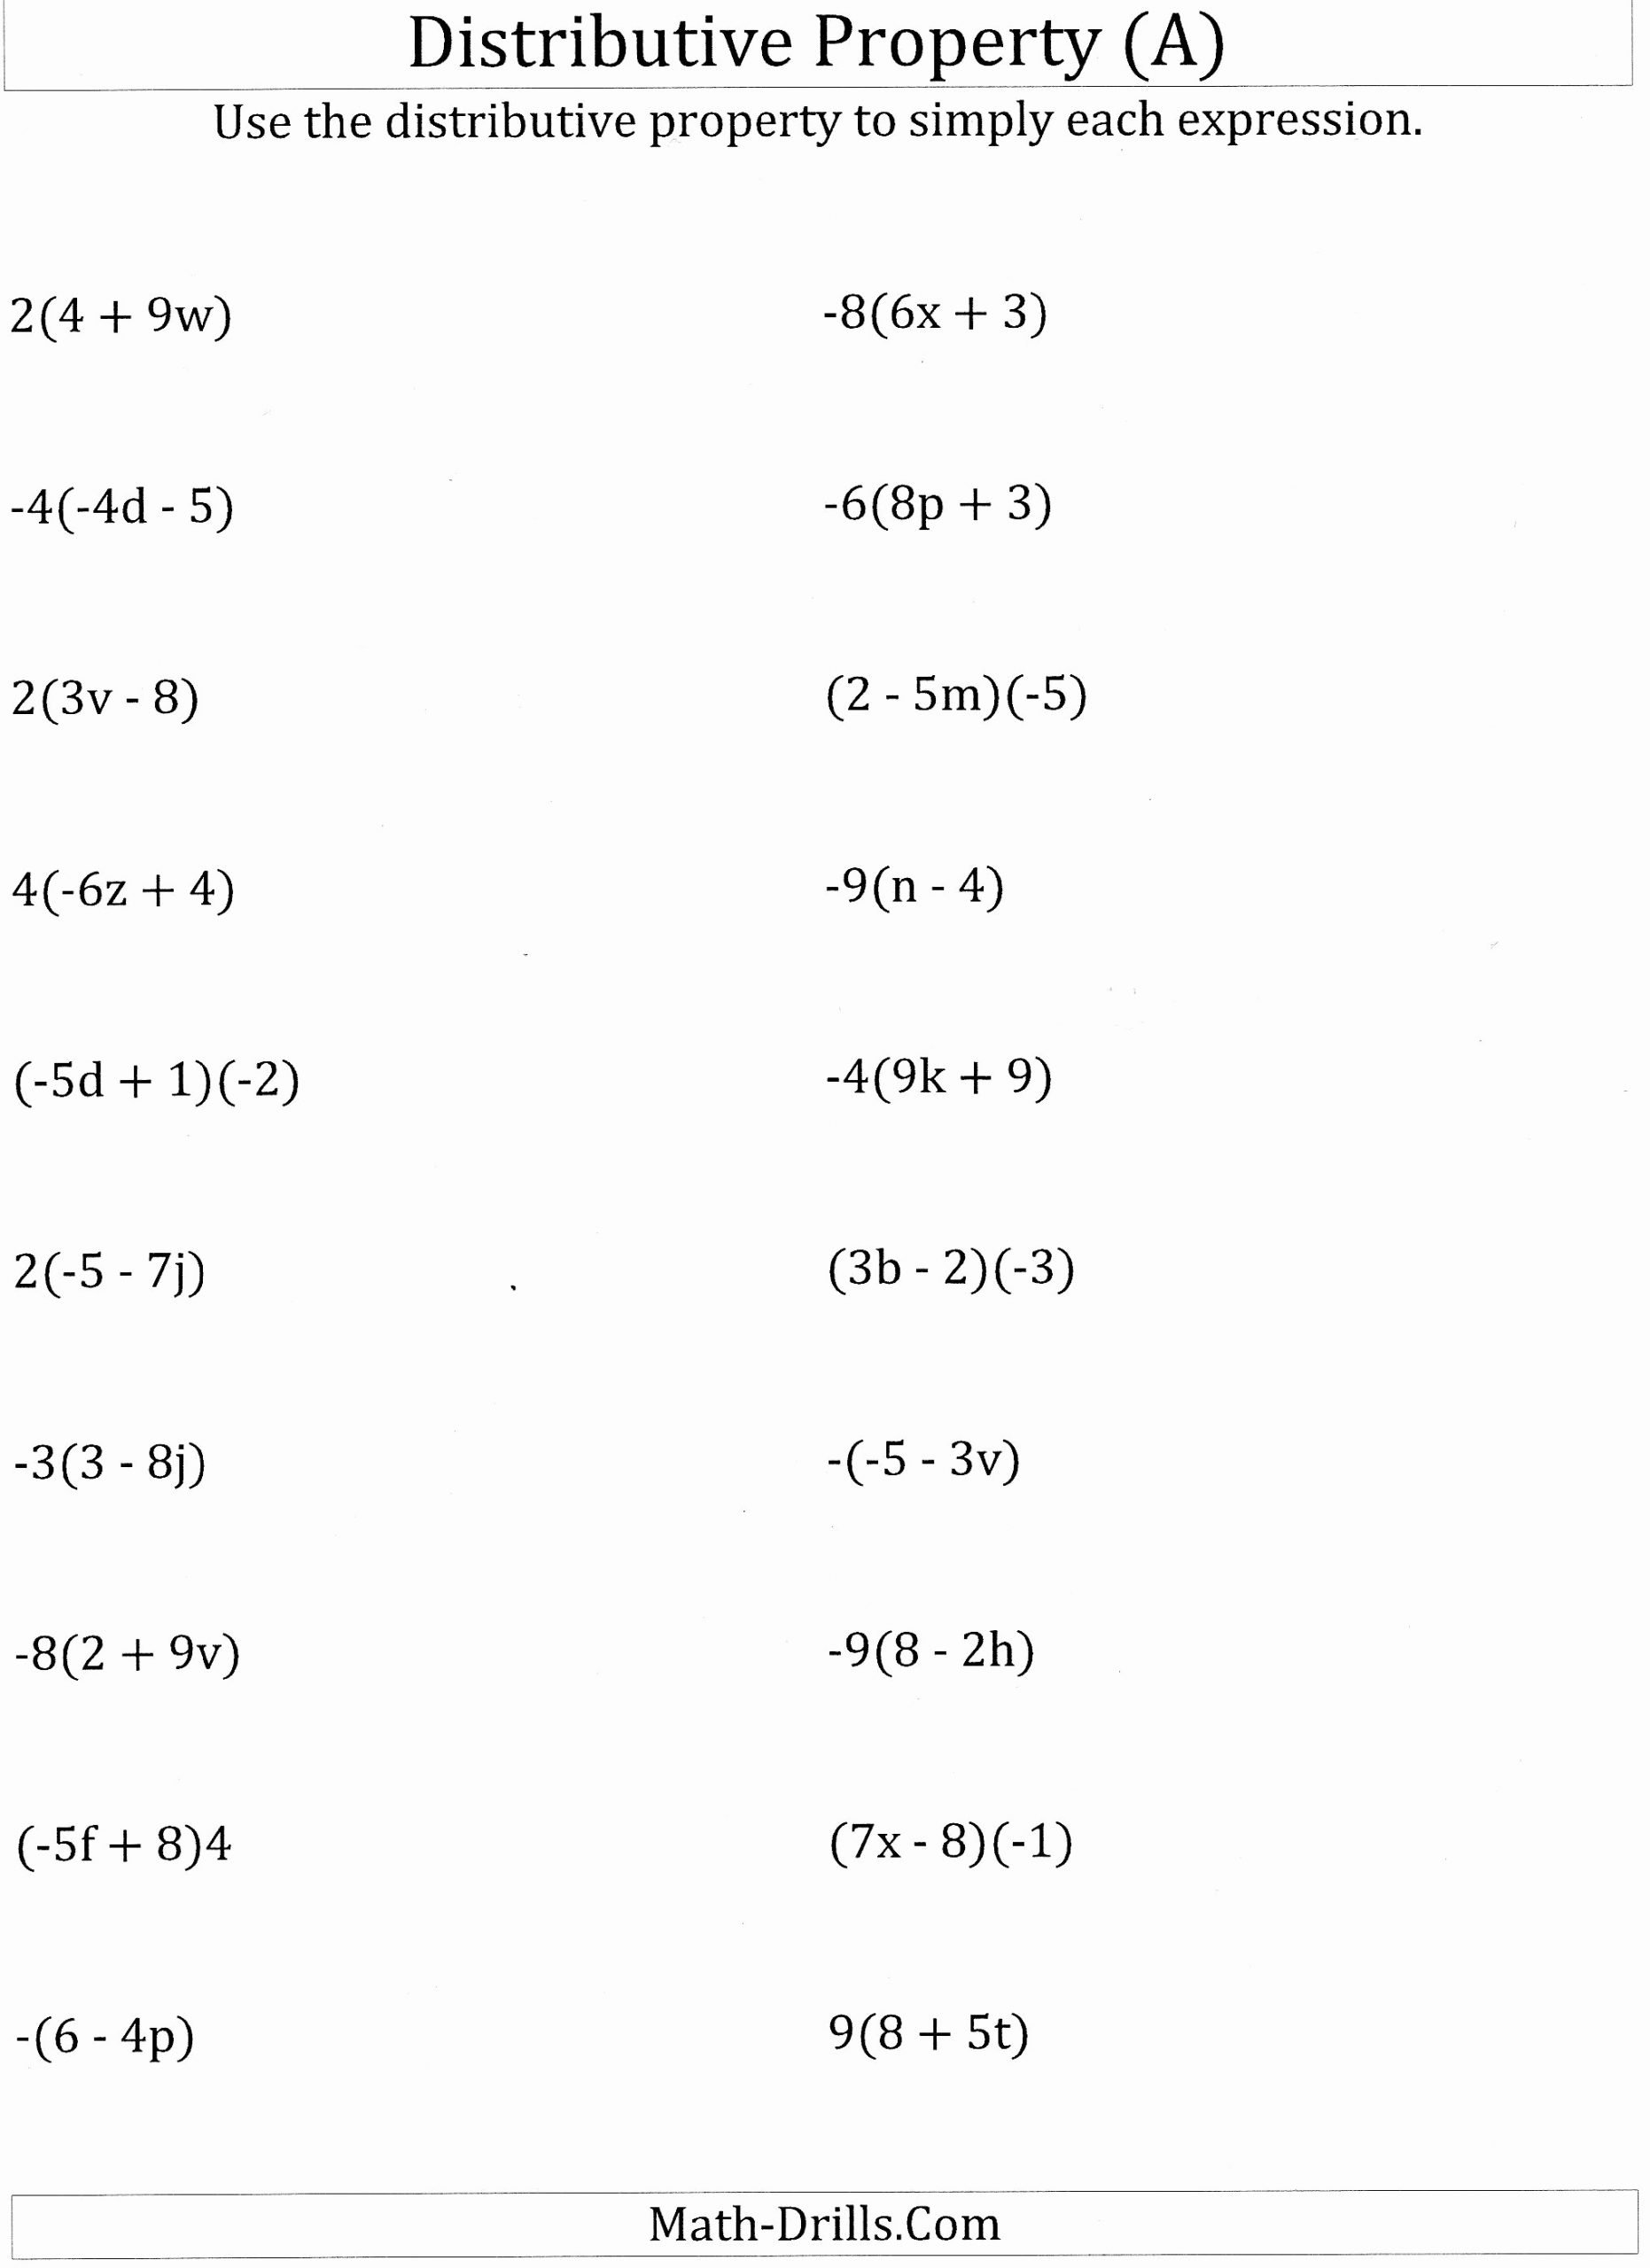 Distributive Property Worksheets 6th Grade Lovely Worksheet Math Worksheets Distributive Property